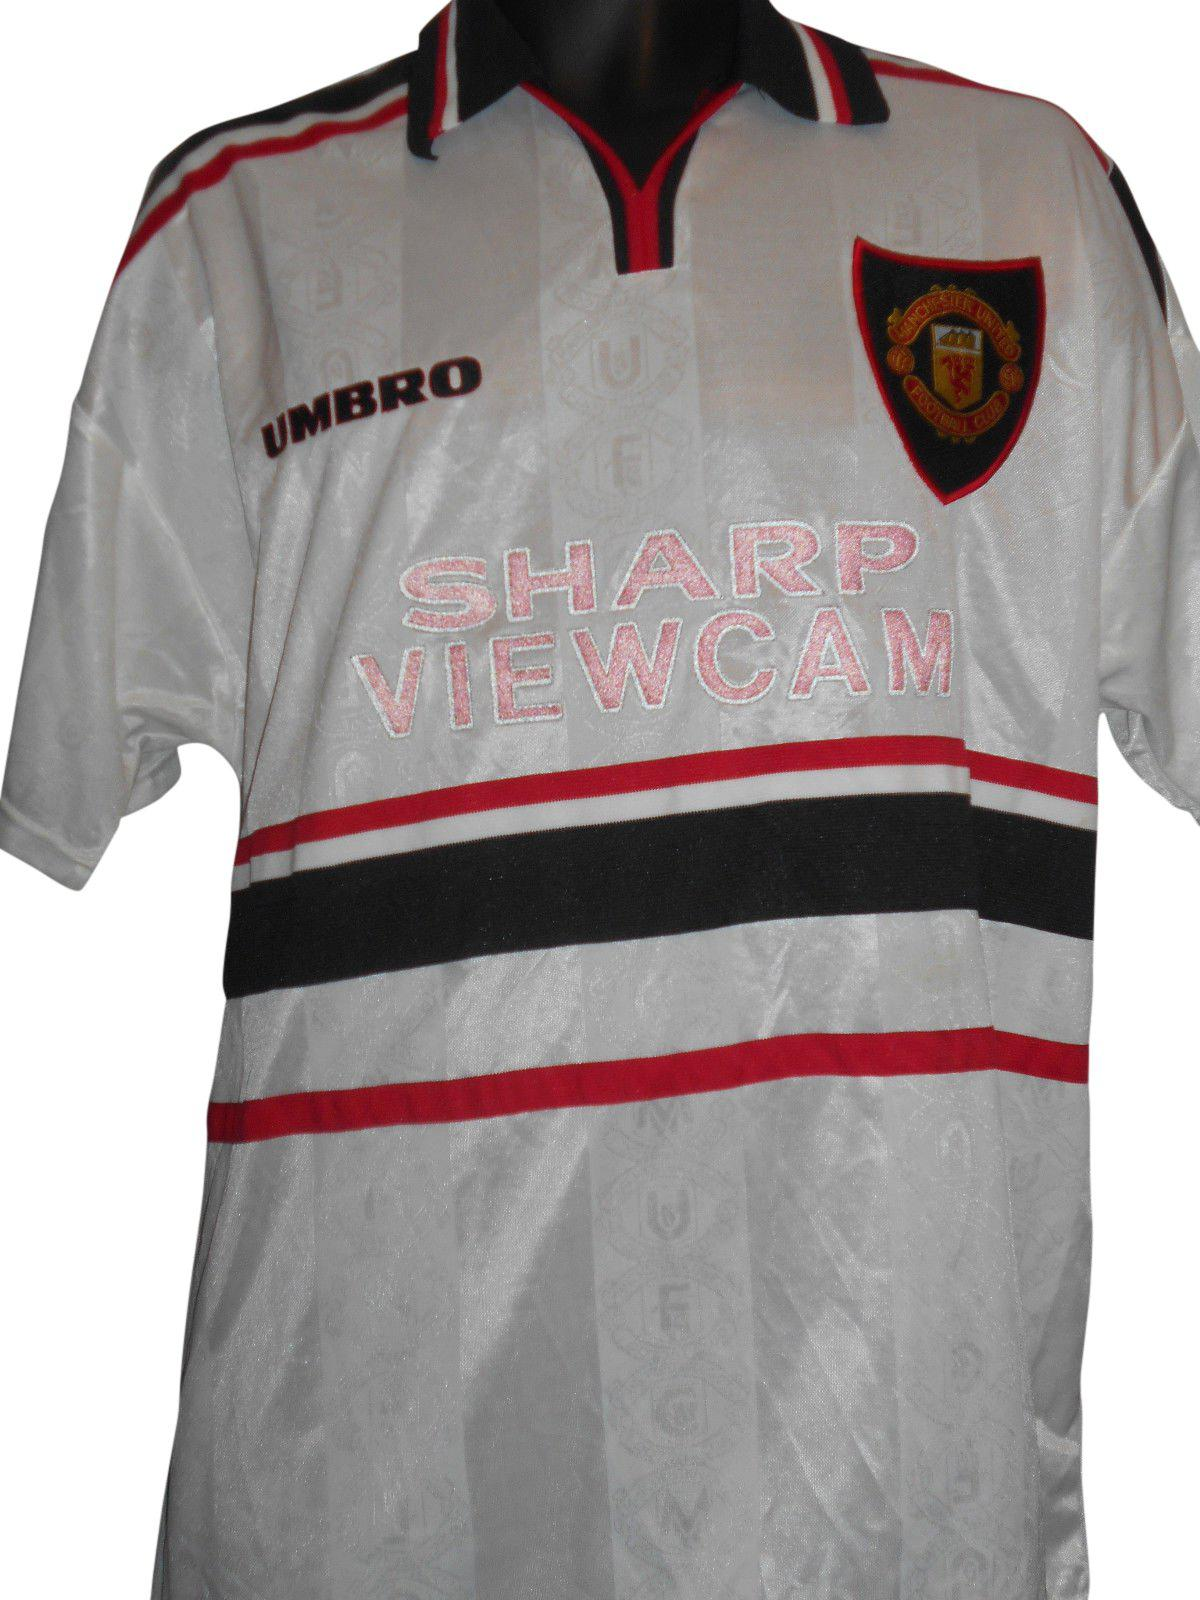 0f94dc612d4 Buy used Vintage Manchester United football shirts online - Loads in.. -  Classic Clothing Crib